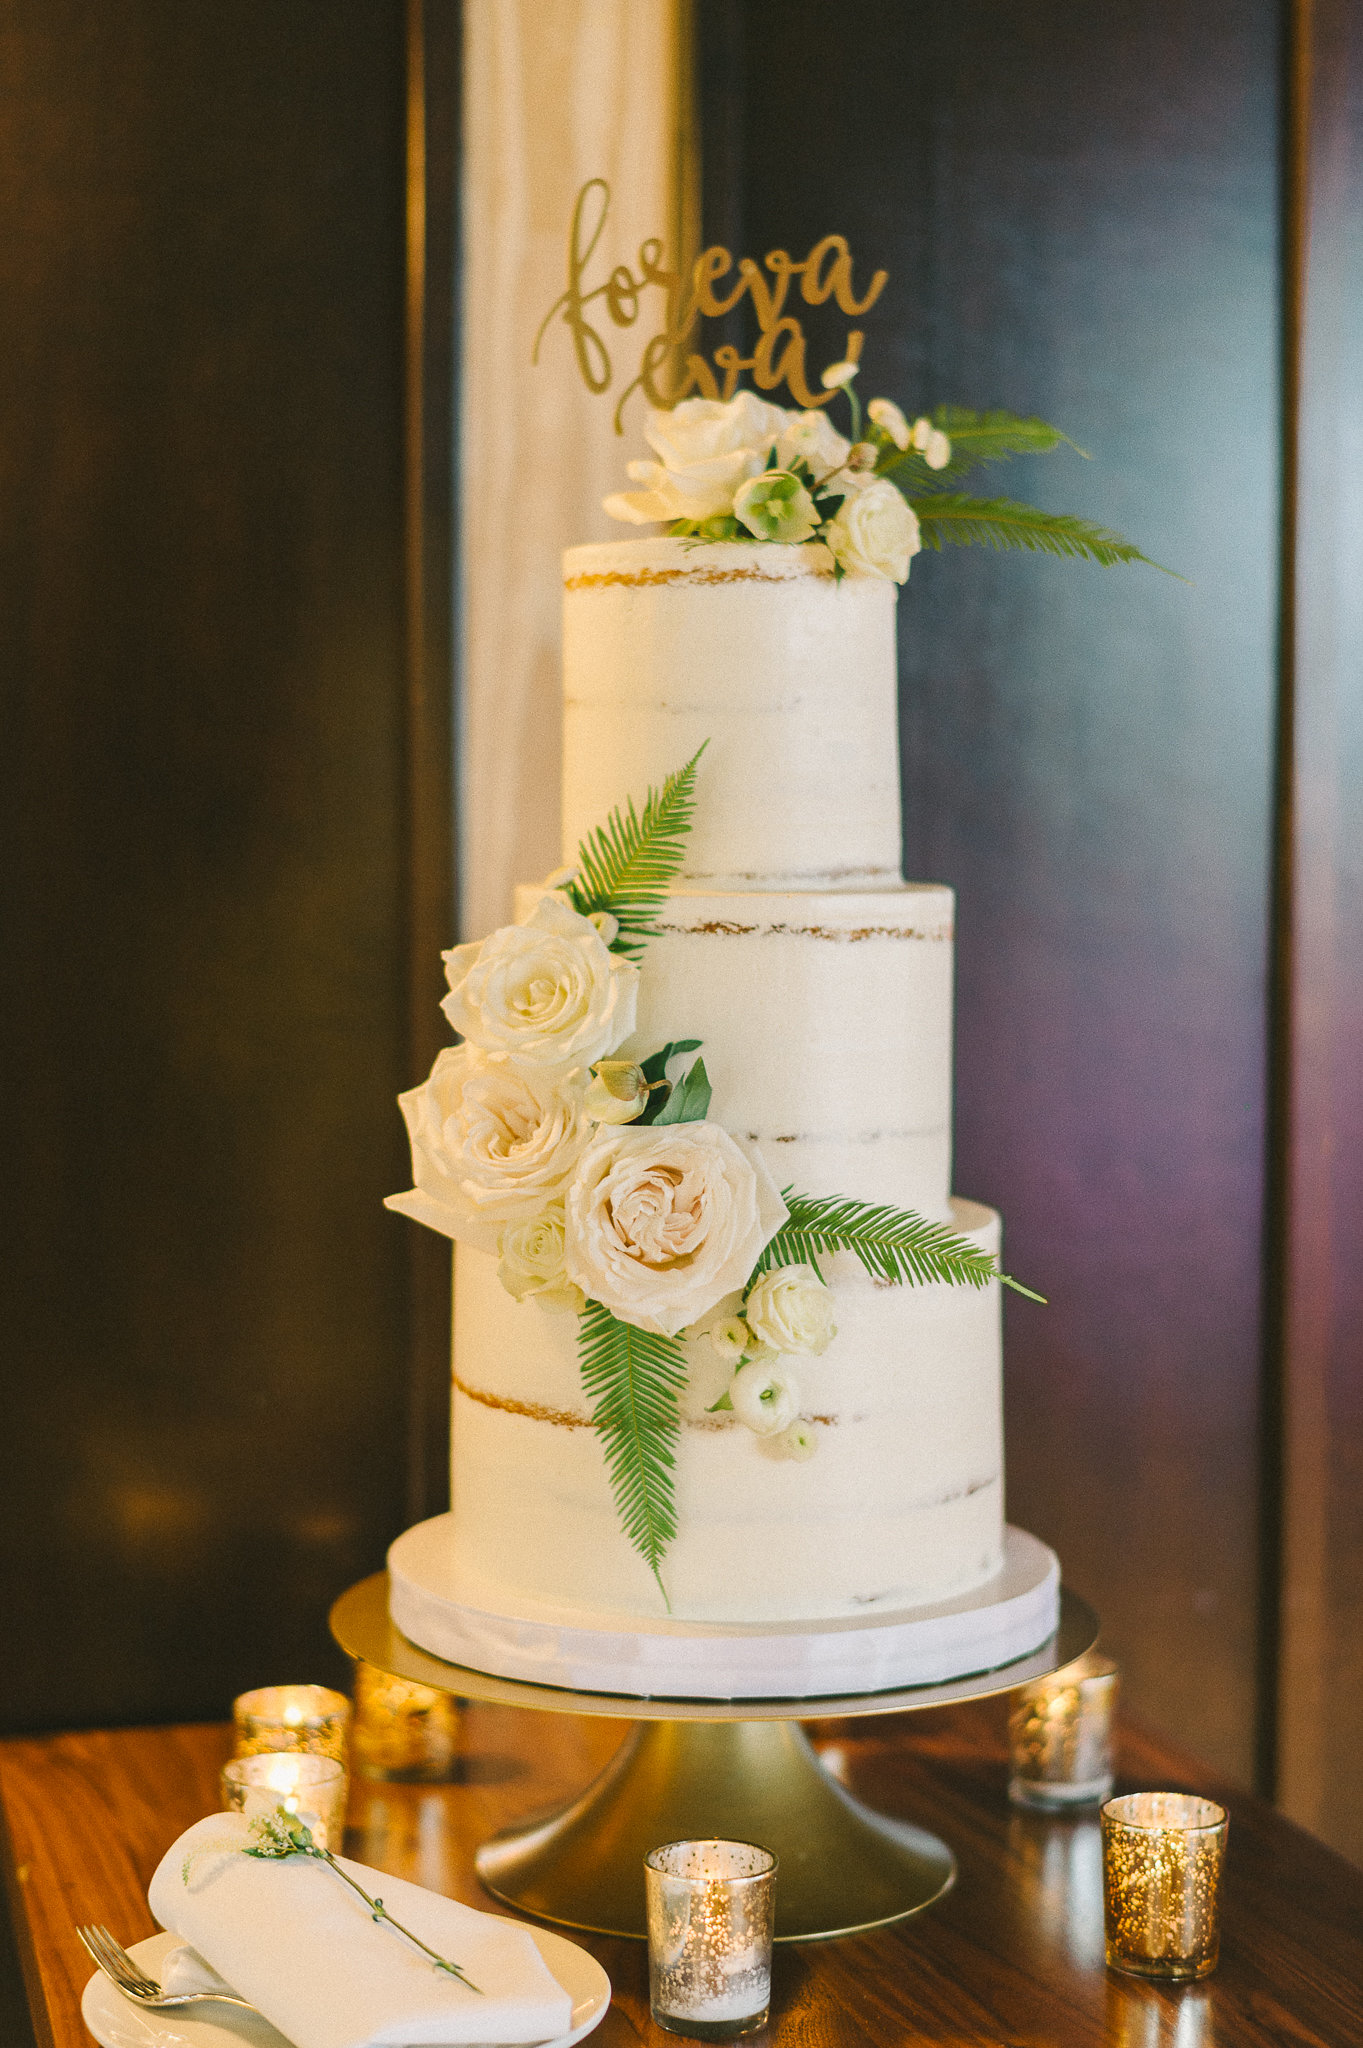 A collaboration with  Buttercream Bakery ,  Designed Perfectly Events  and Moi, and, of course, photographed by  Liz Fogarty Photos  With music/entertainment by John Howard, A2Z Music Factory